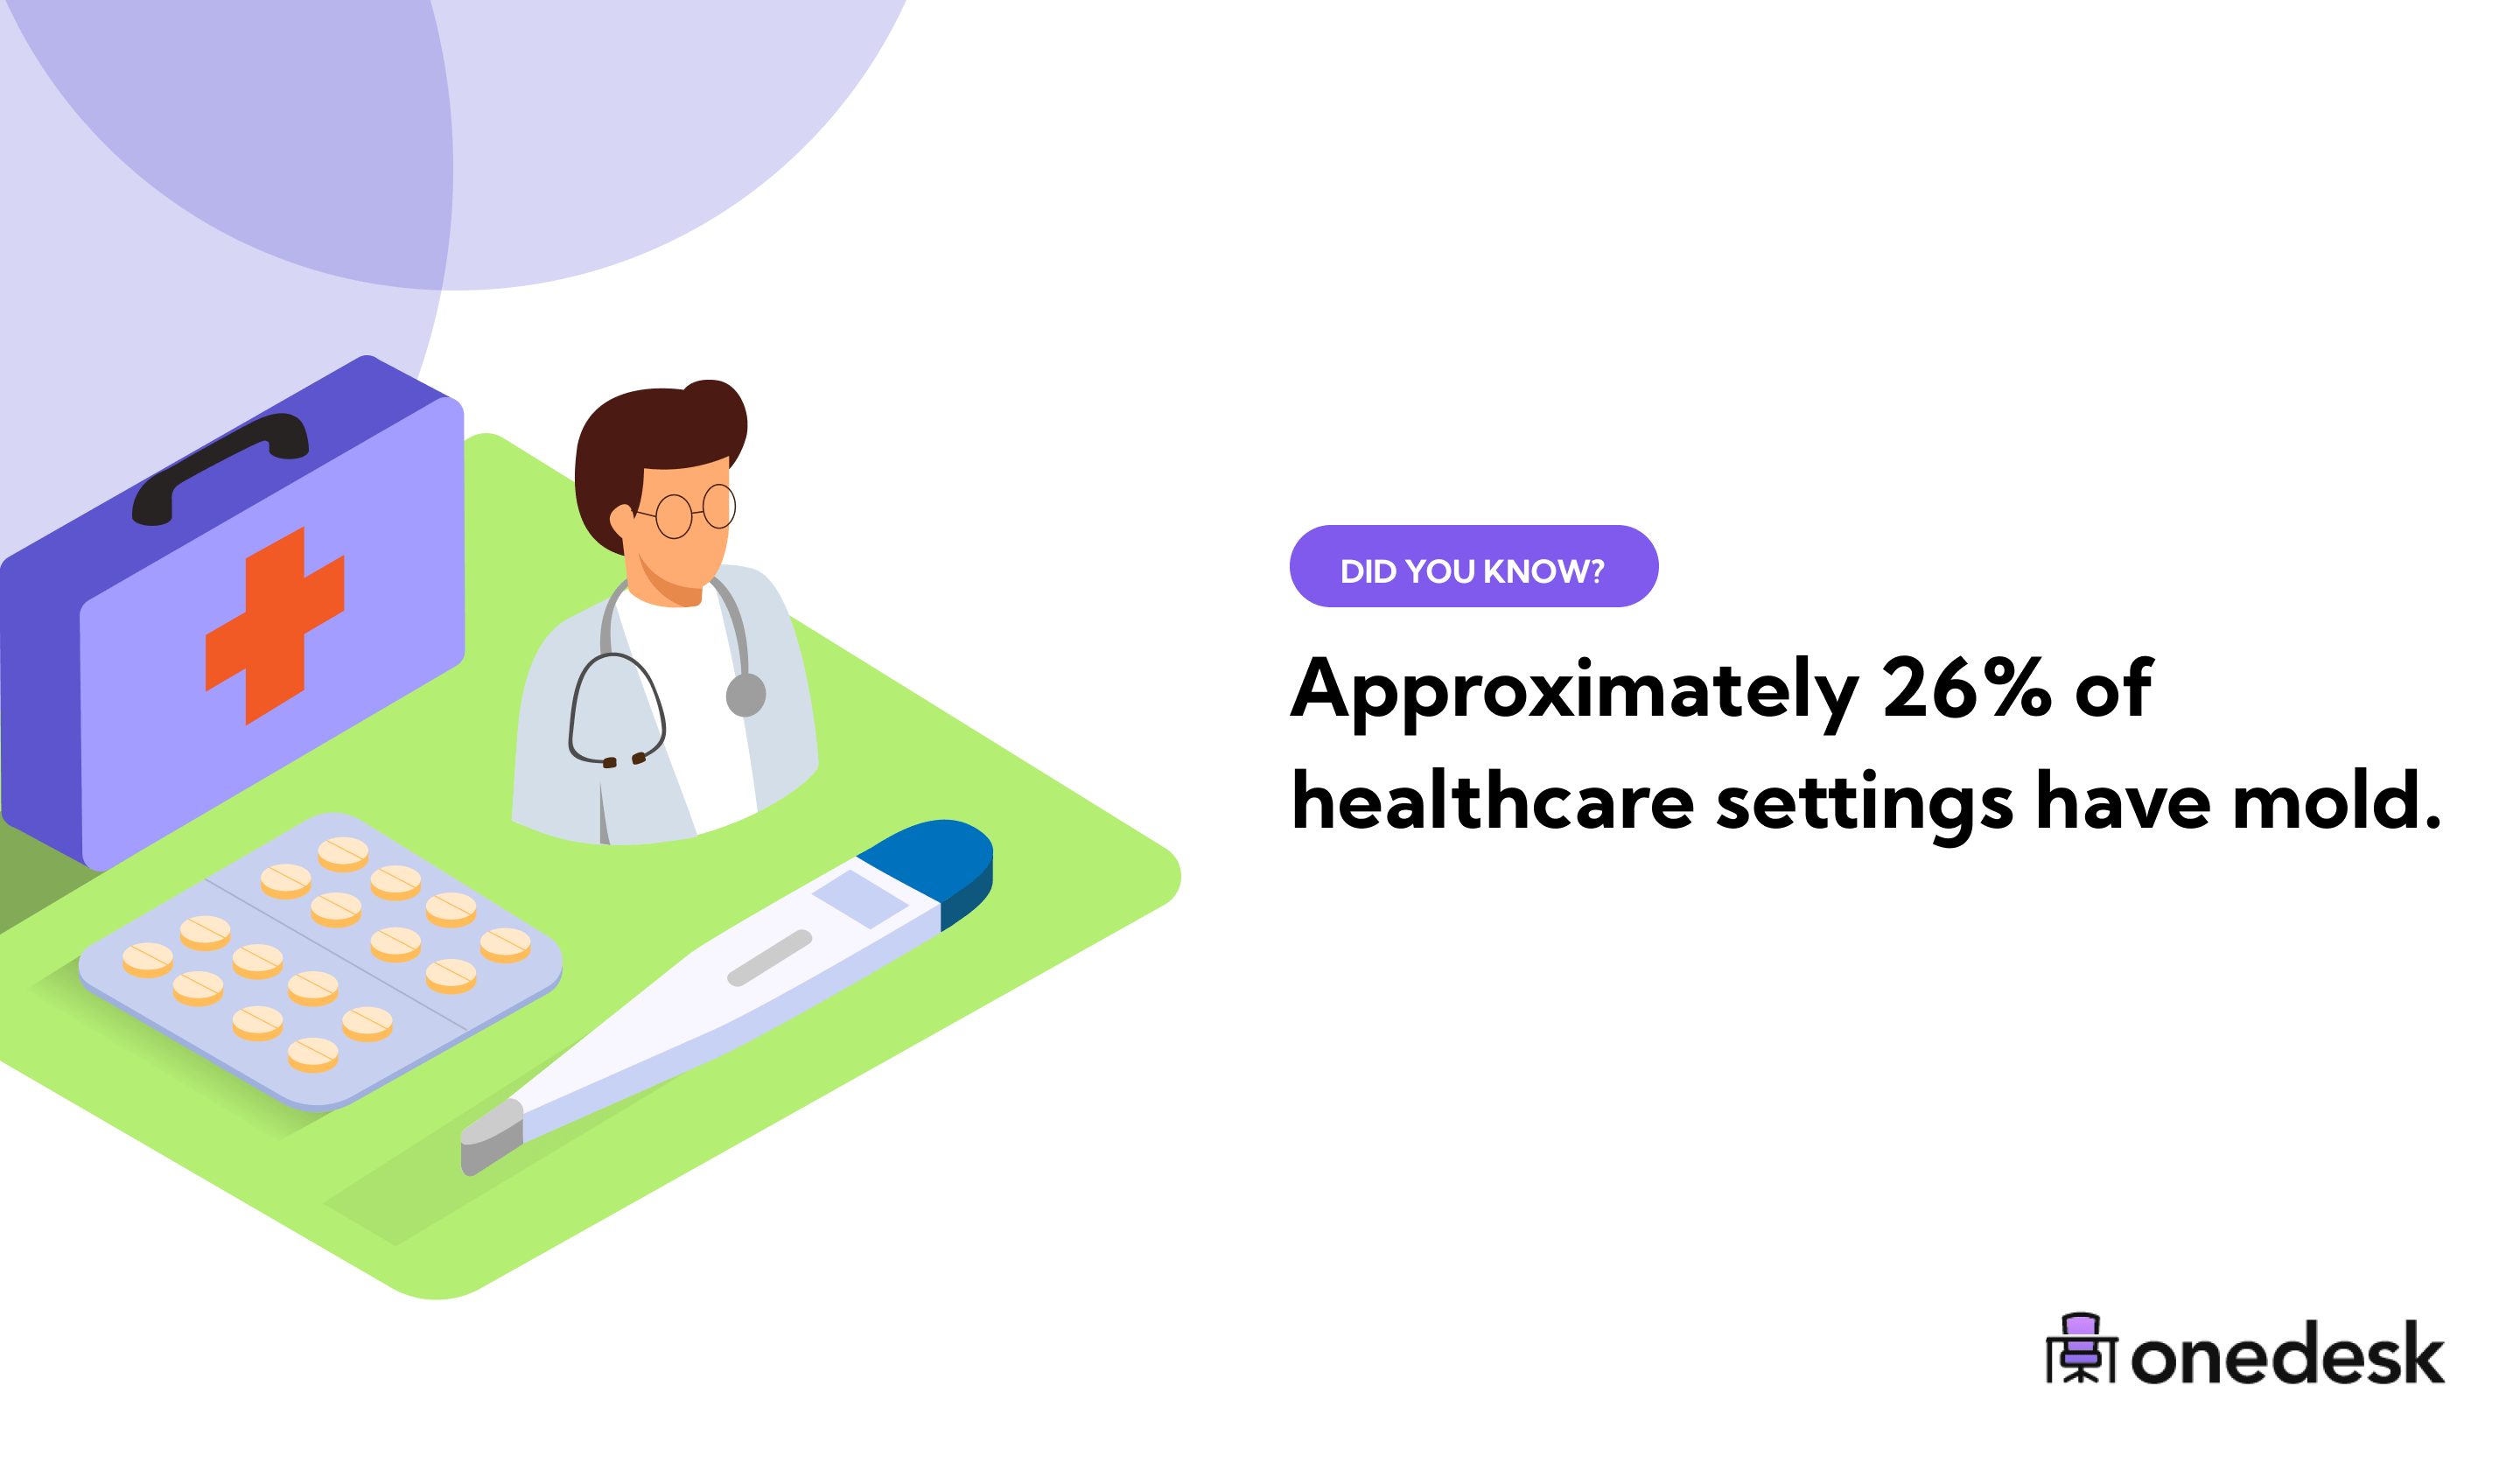 percent of healthcare settings that have mold